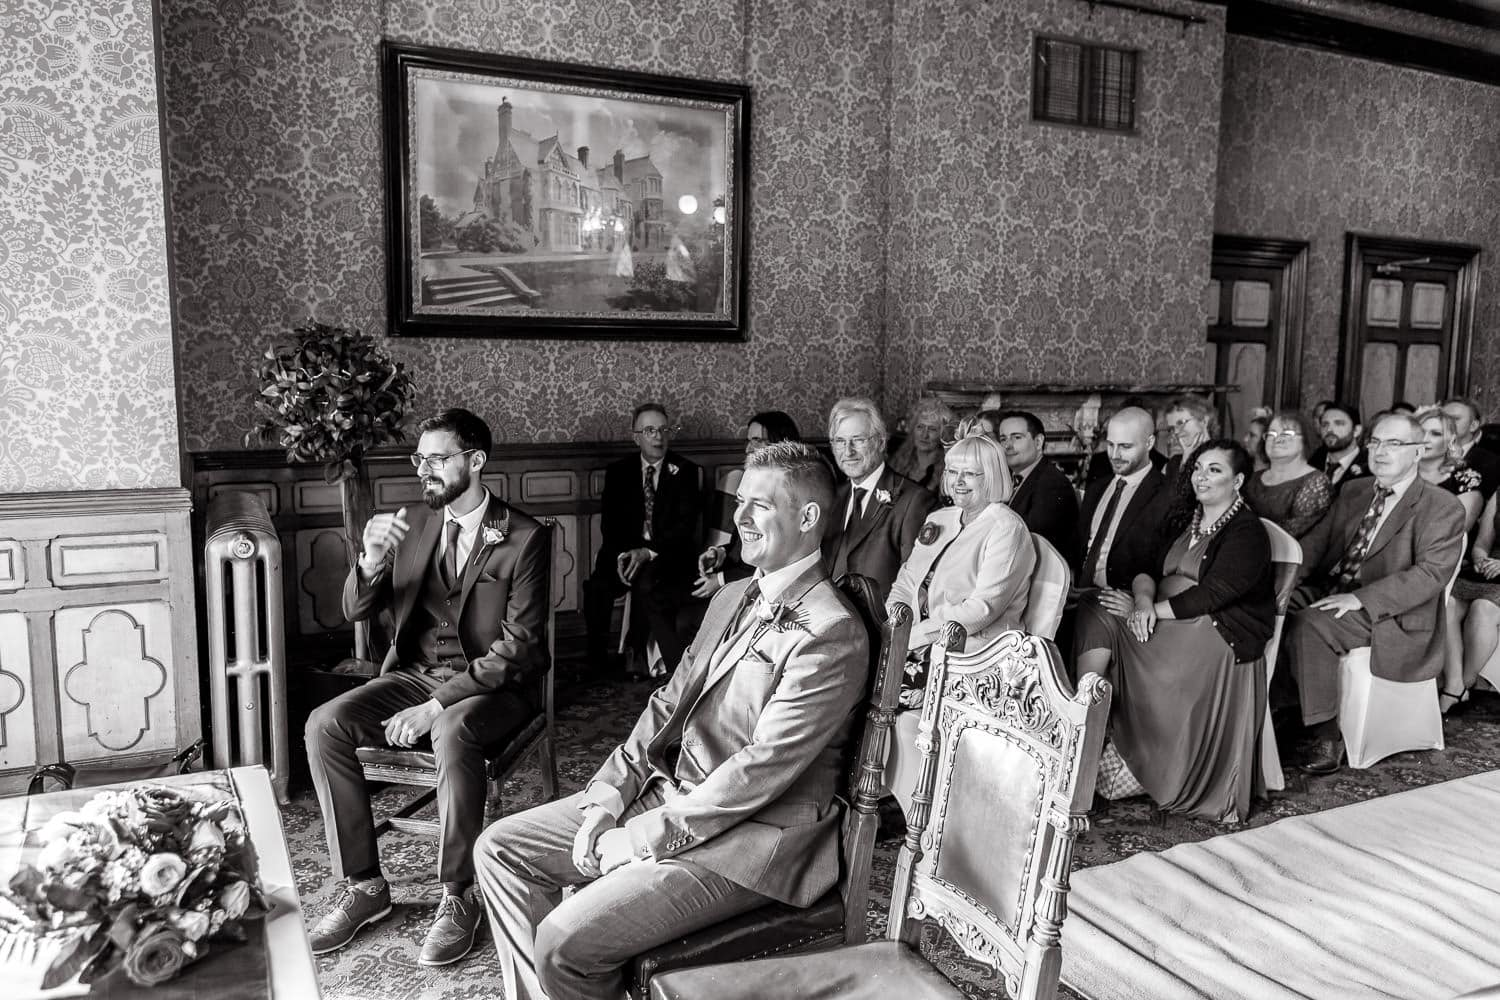 groom looking nervous while he waits for bride to arrive at wedding ceremony